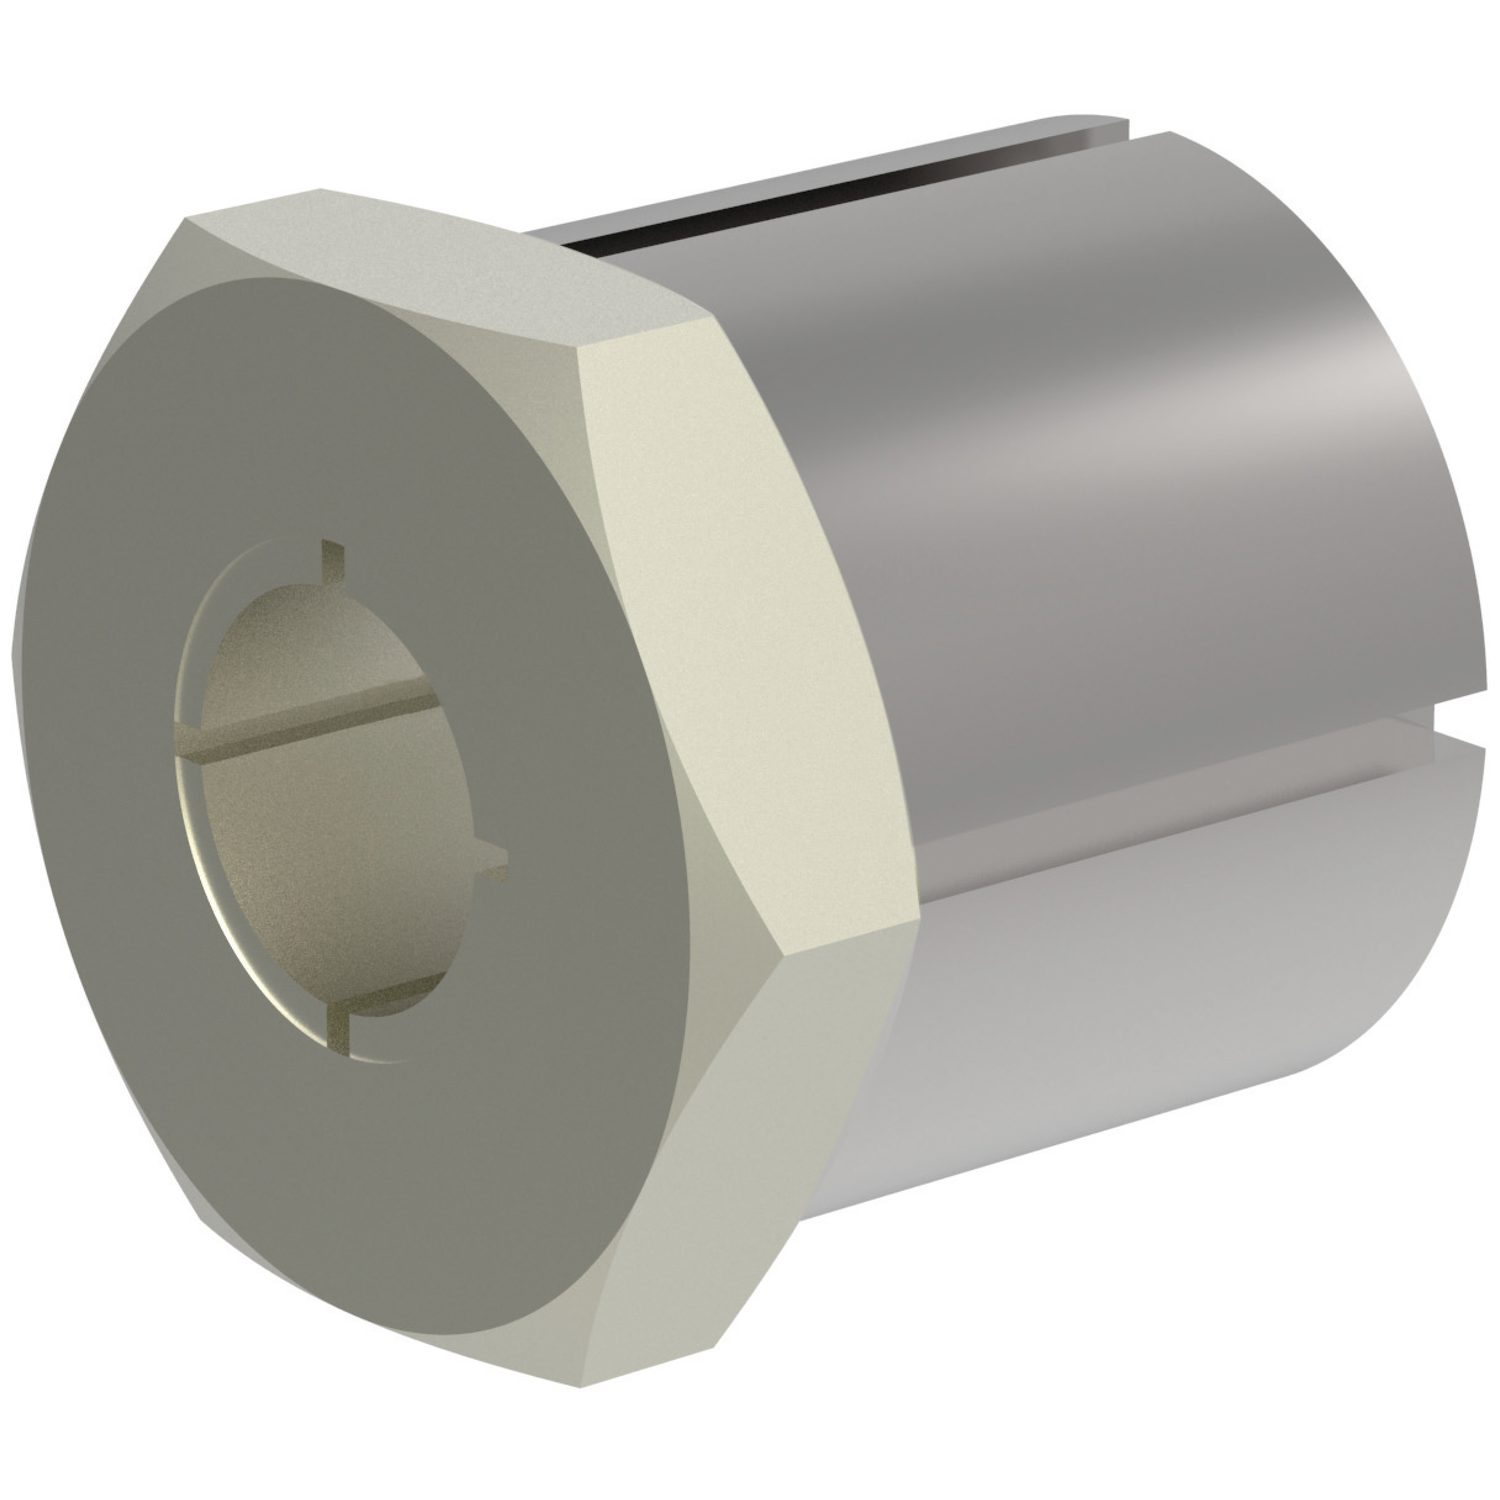 R3221 - Steel Taper Bushes